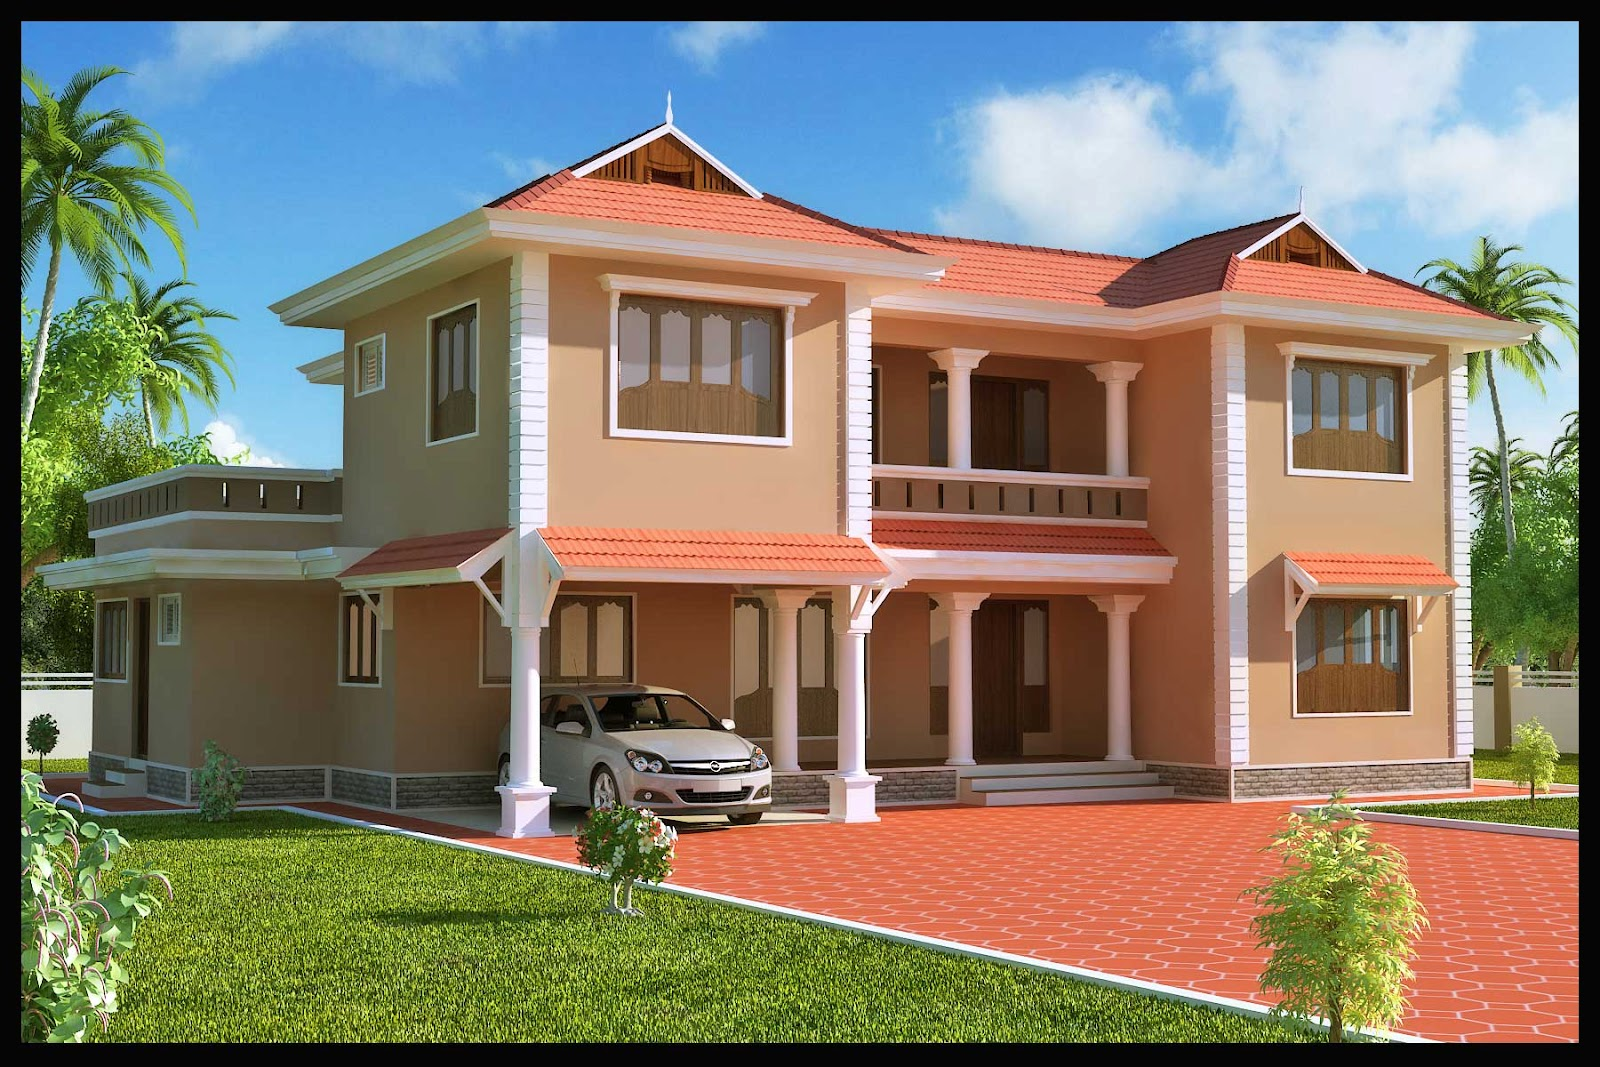 Kerala building construction 4 bhk villa Indian house color combinations